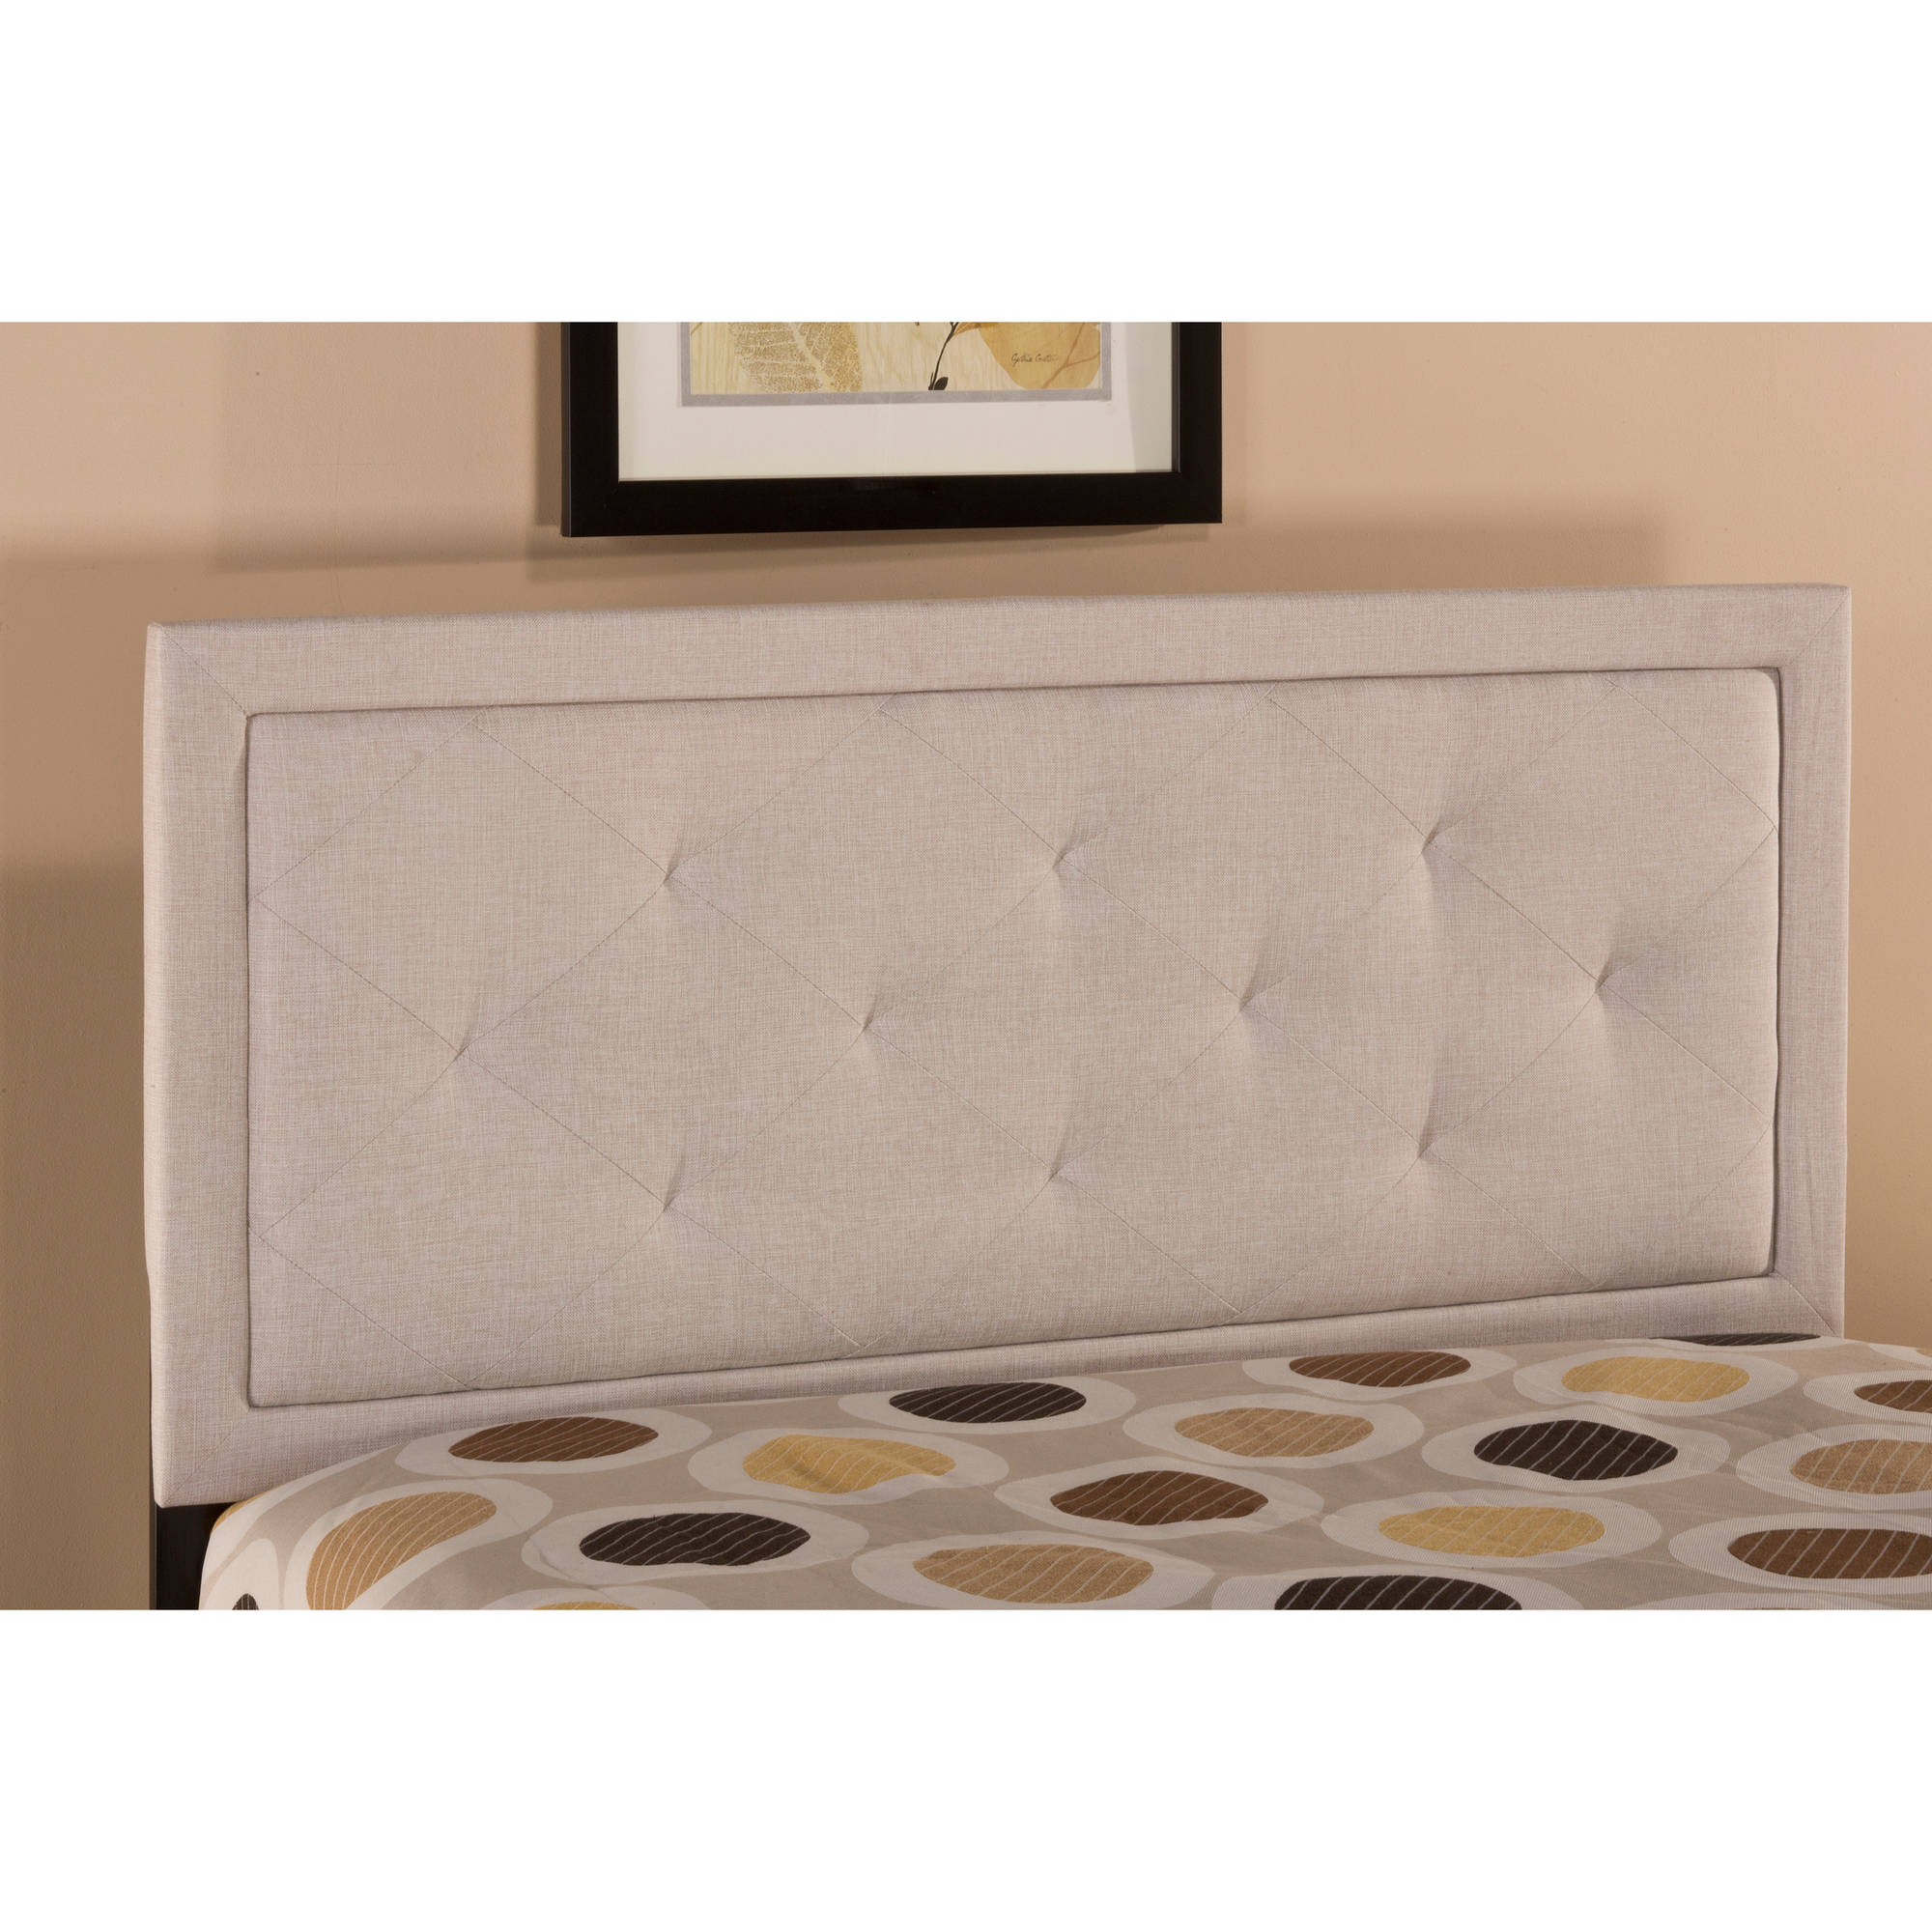 Hillsdale Furniture Becker Full Headboard with Bedframe, Cream by Hillsdale Furniture